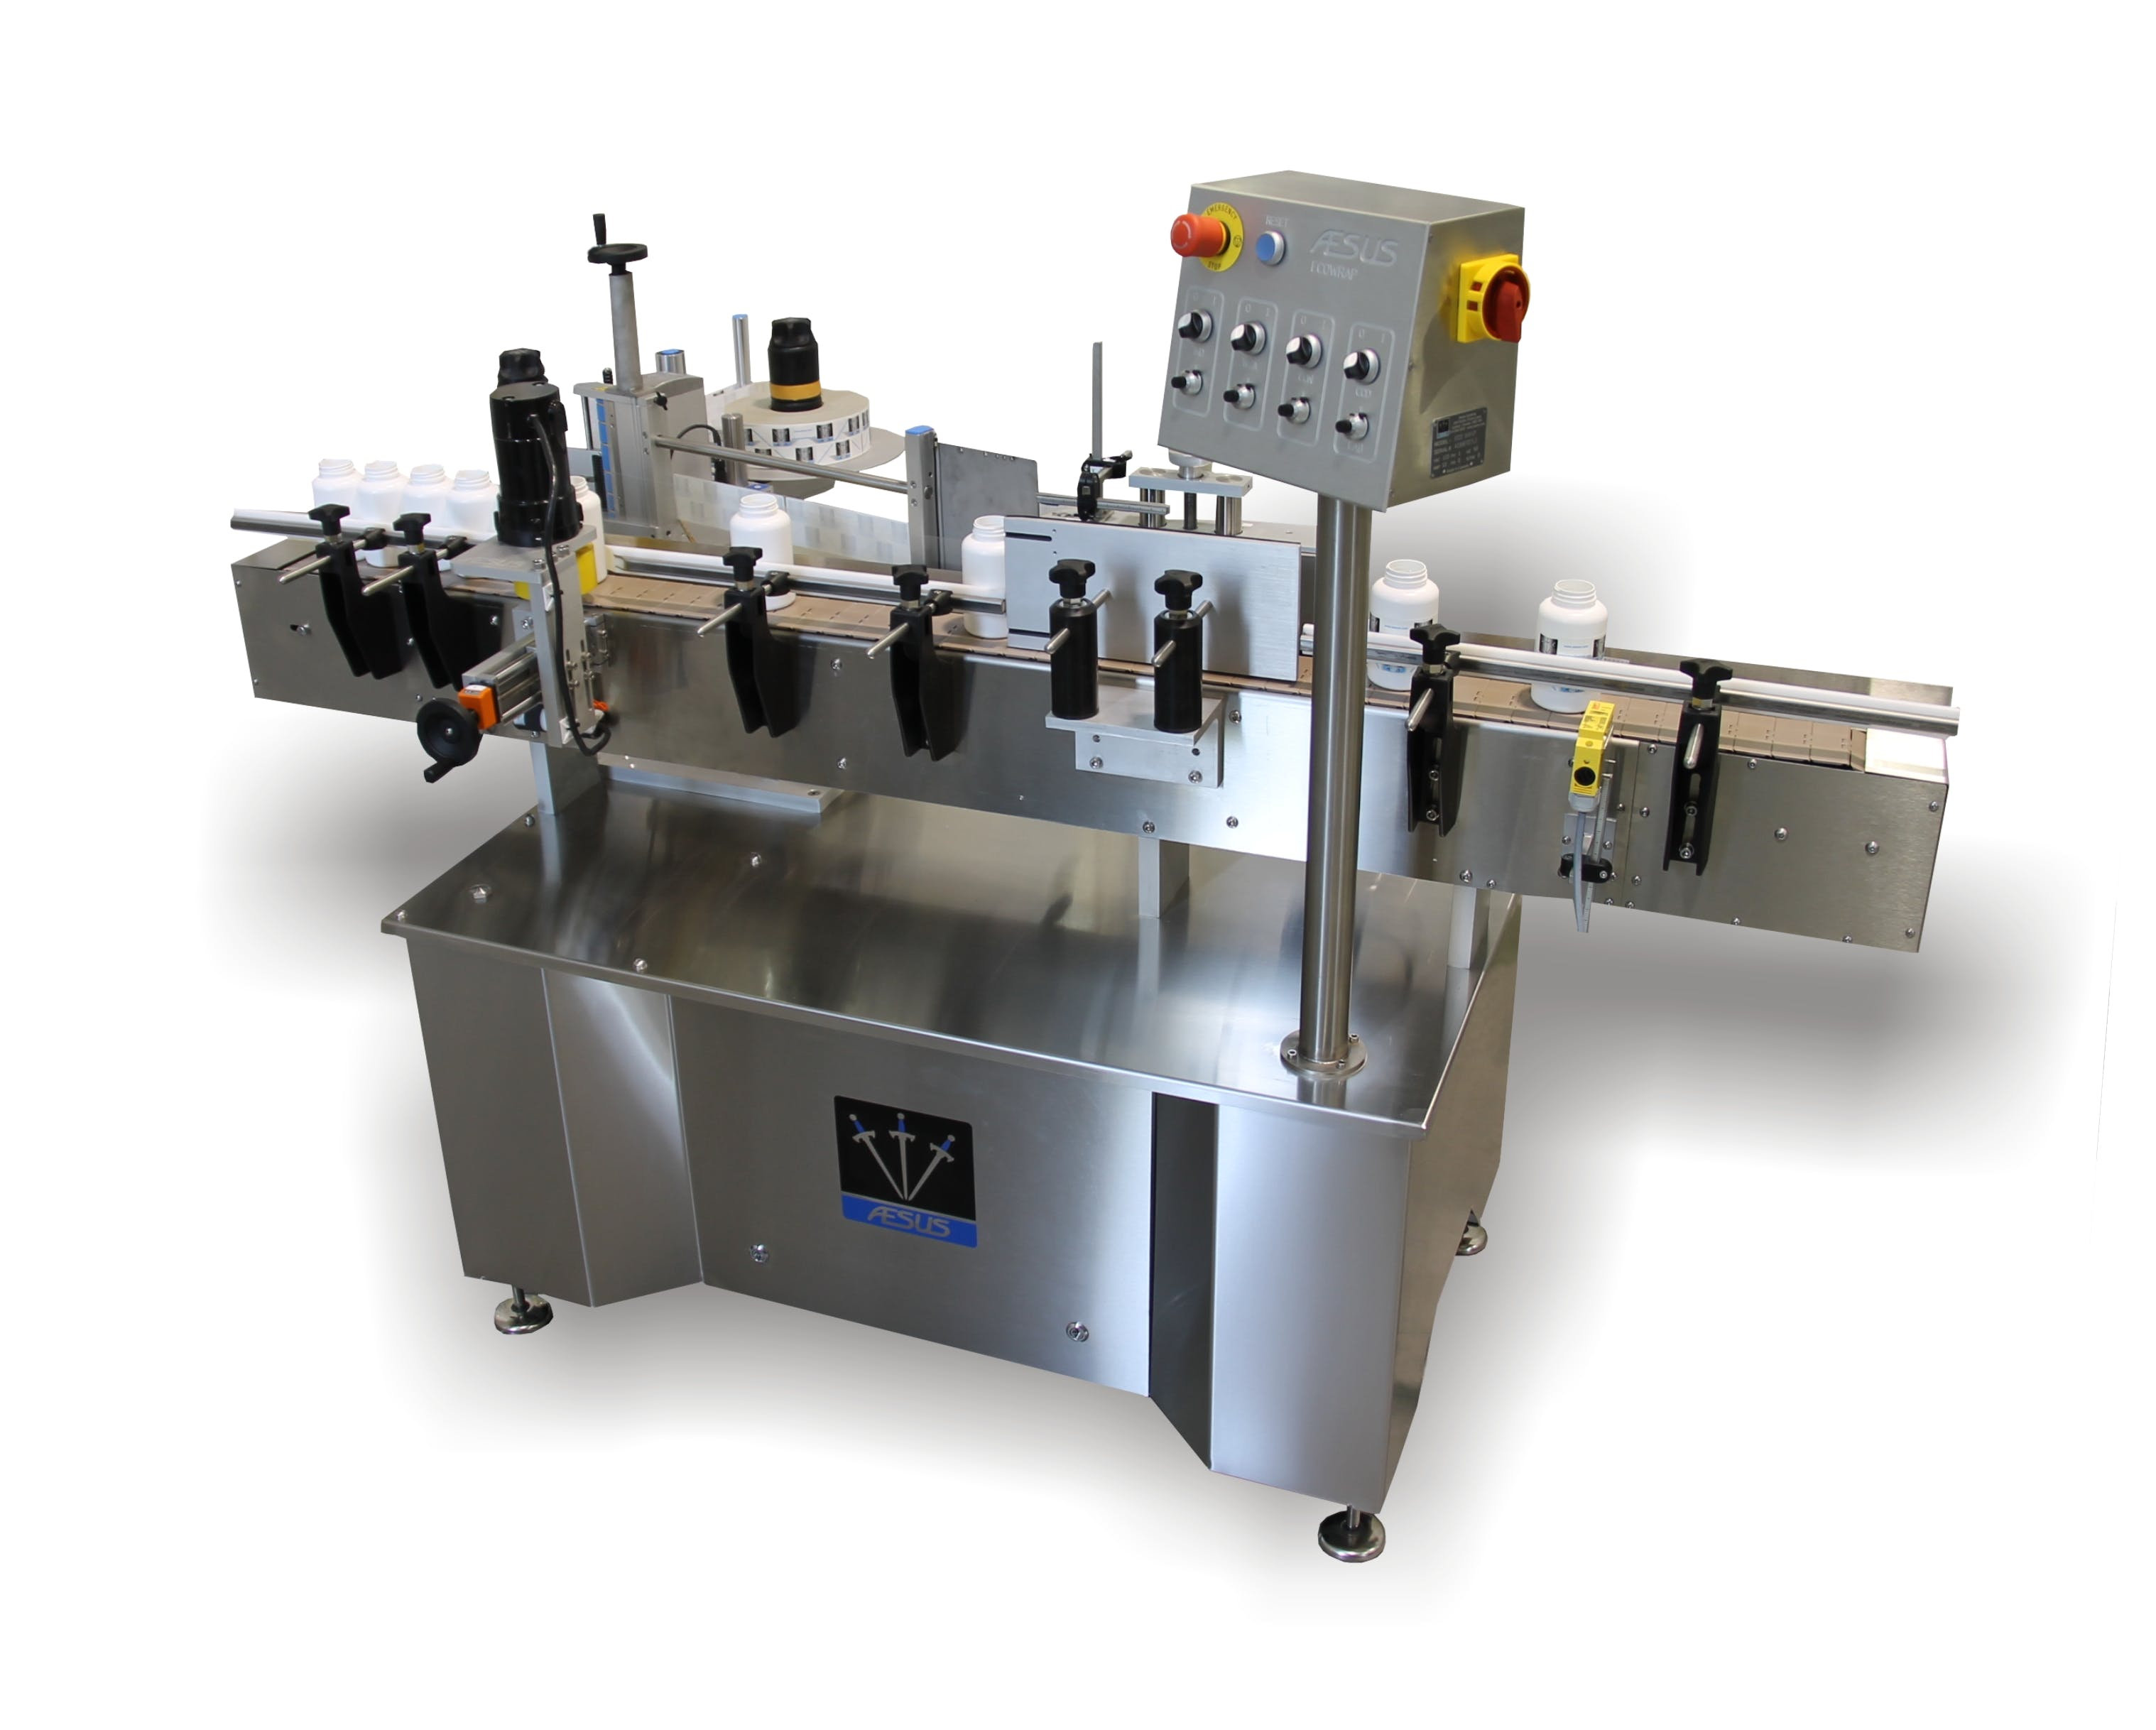 ECO Wrap Labeler Bottle labeler sold by Aesus Systems